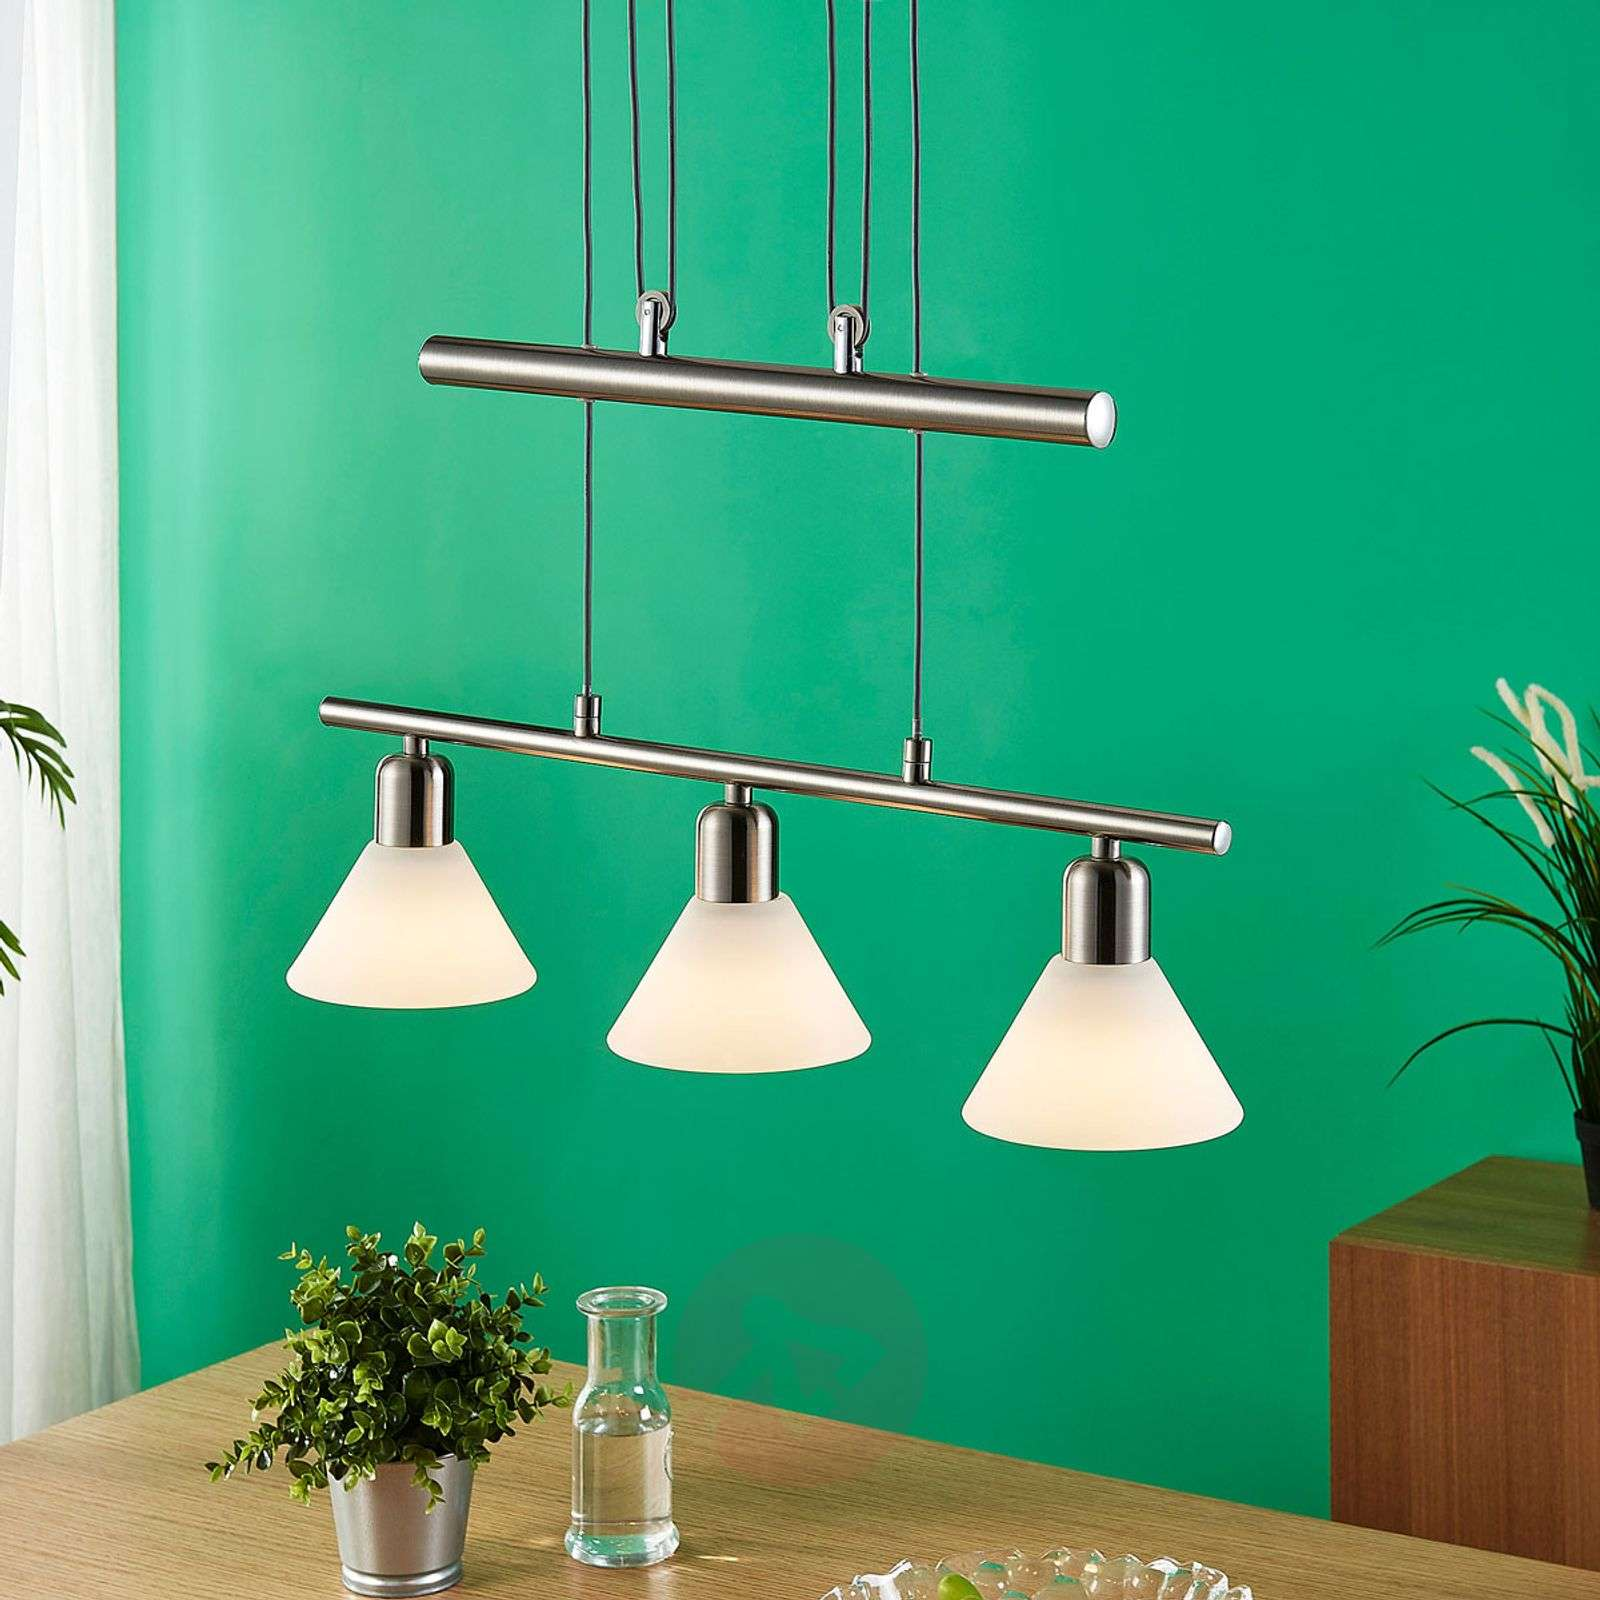 Easydim dining table pendant light Eleasa with LED-9621384-02